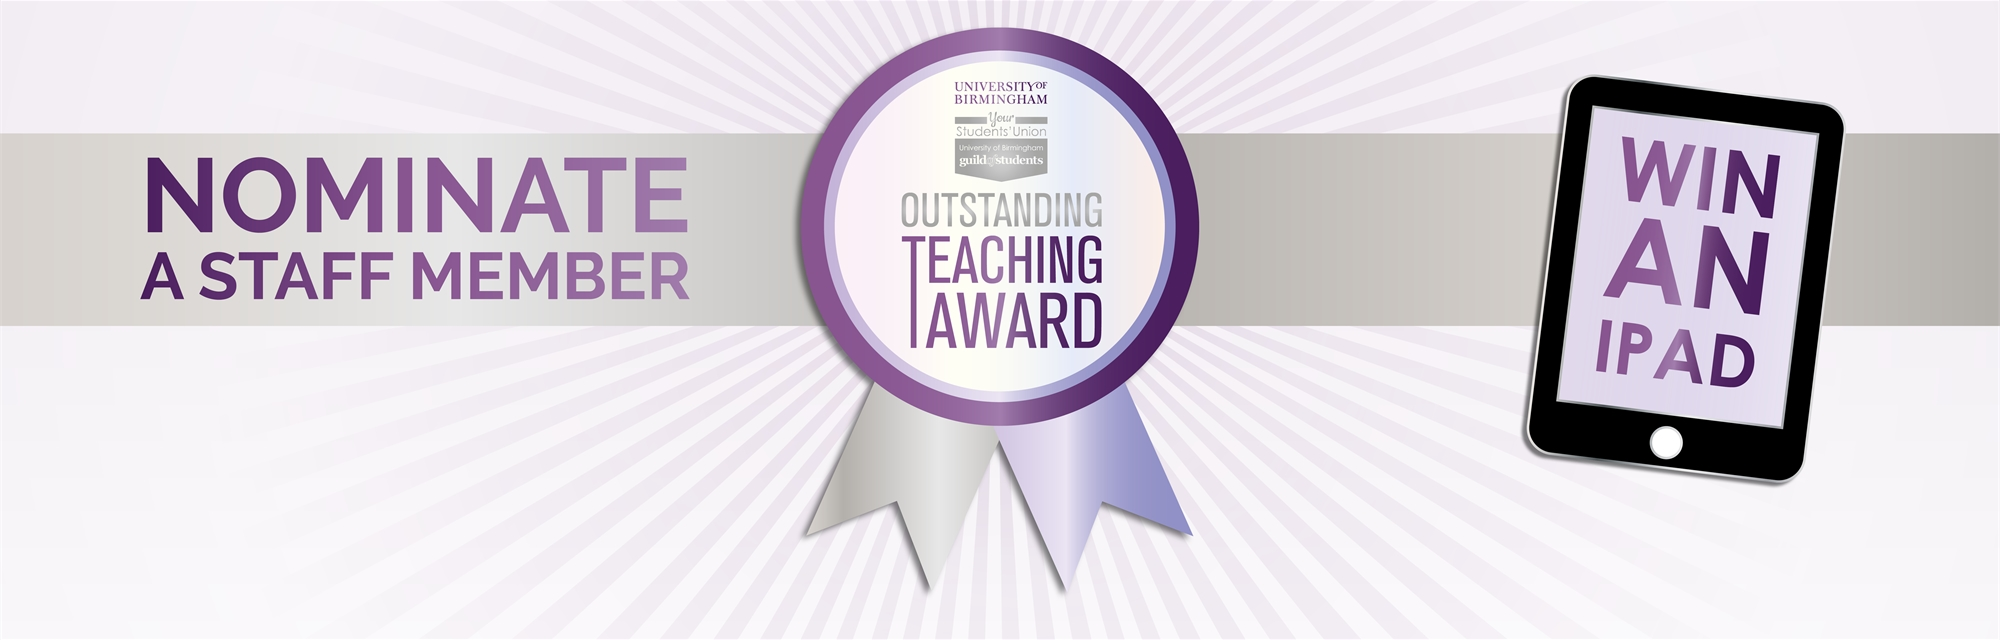 Outstanding Teaching Awards 2019 - Nominate a staff member - Click here for more information